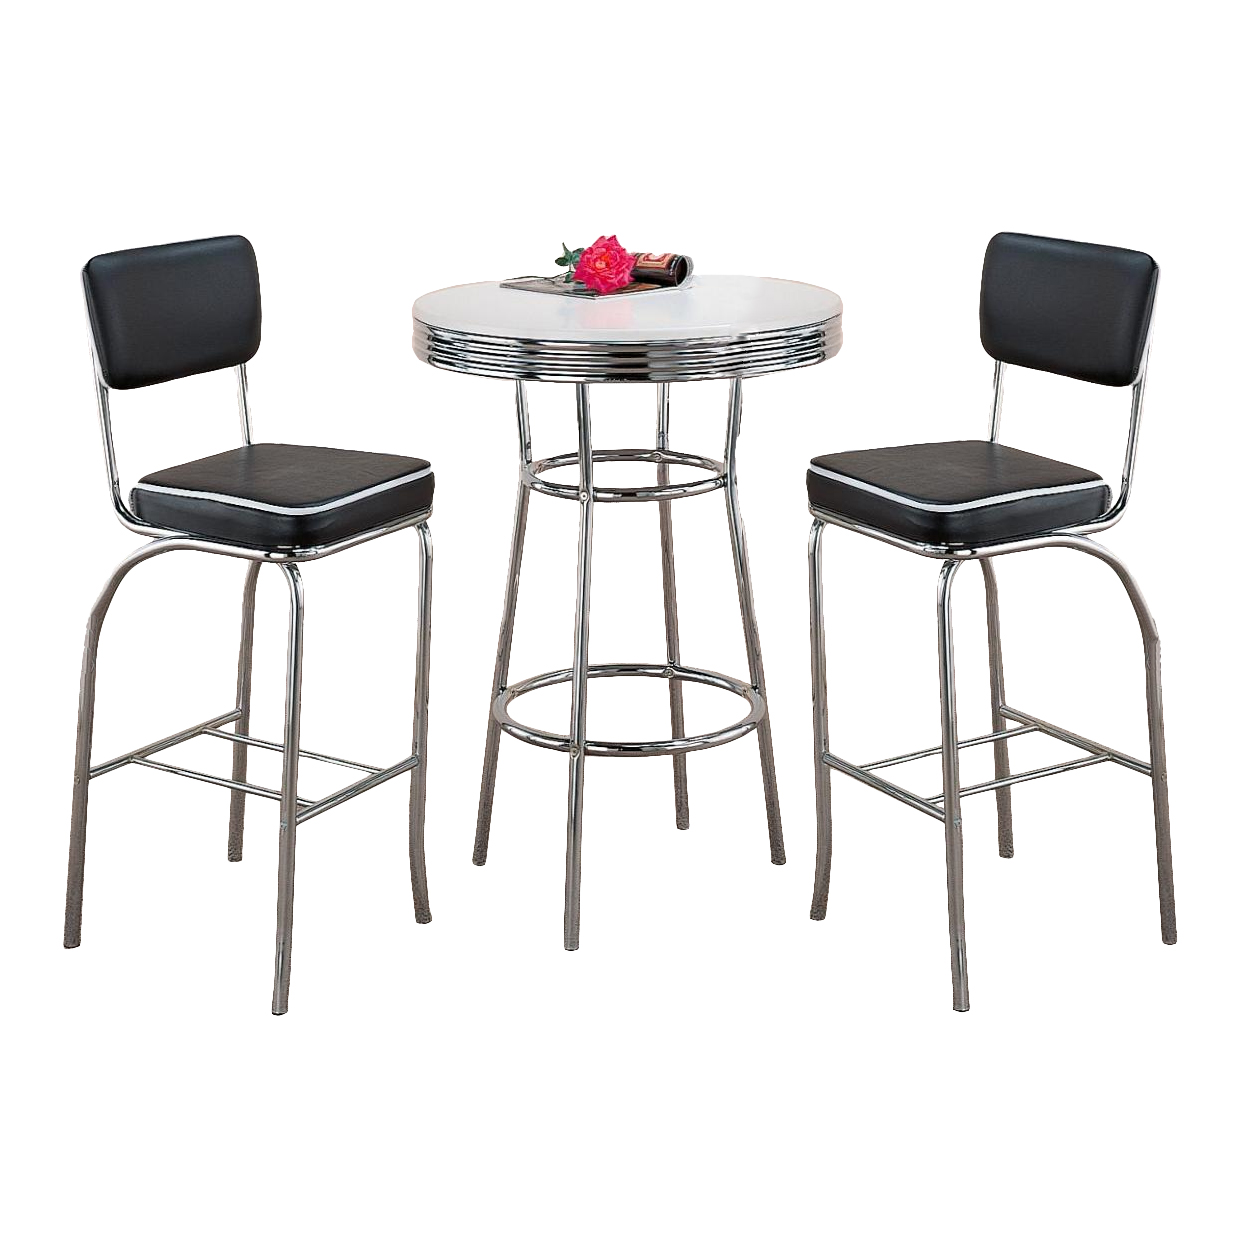 Furniture At Wholesale Prices: Restaurant Chairs, Tables, And Barstools At Wholesale Prices